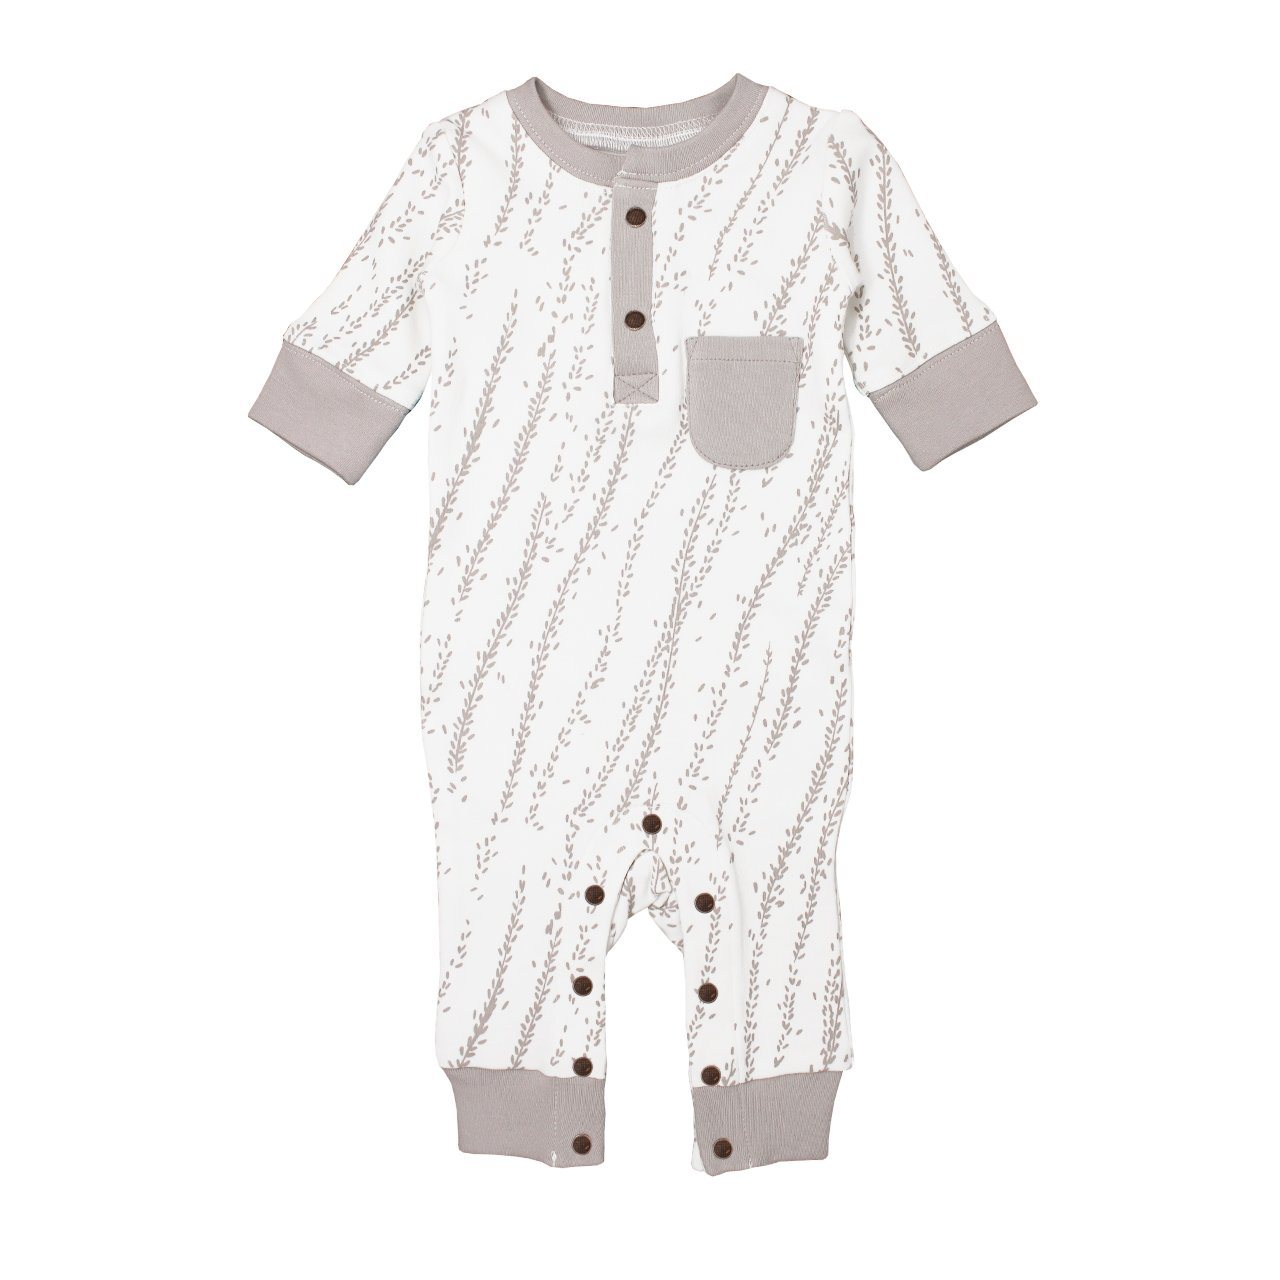 Organic Footless Romper - Light Gray Willow - Project Nursery